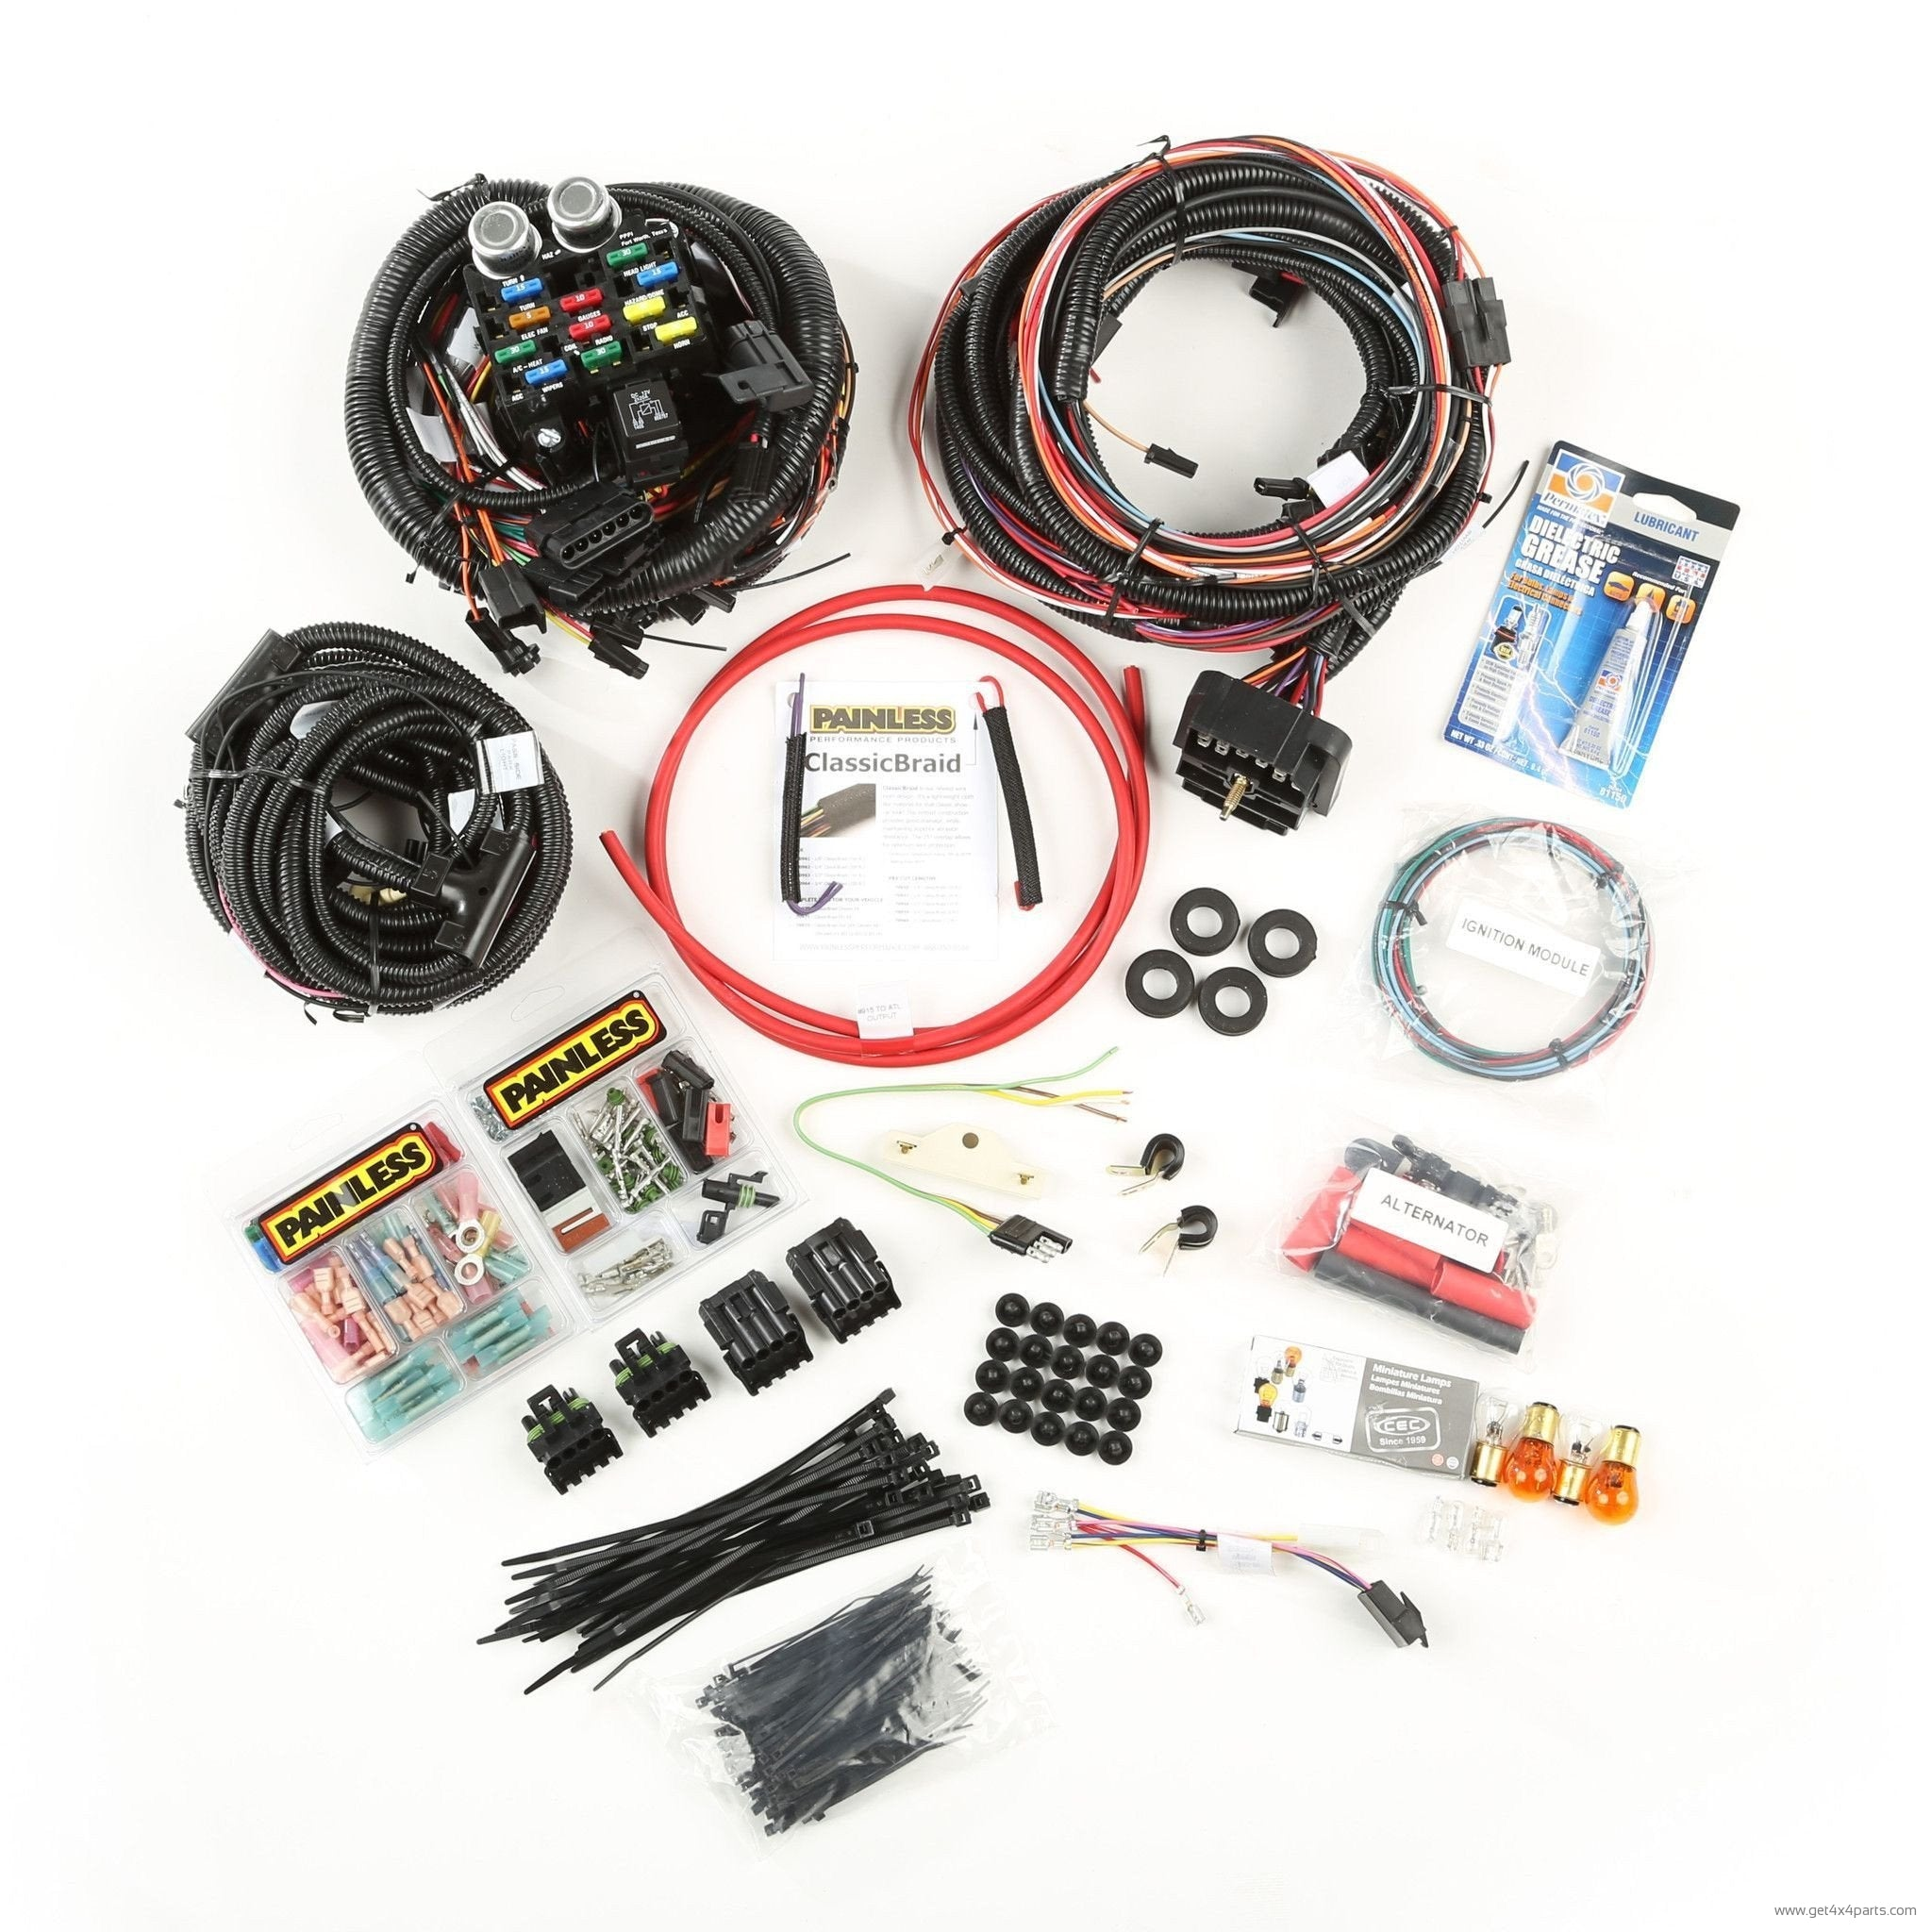 painless wiring harness 76 86 jeep cj models painless wiring harness 76 86 jeep cj?v\\\\\\\=1503517452 coleman 48203b876 mach internal wiring diagram coleman wiring  at panicattacktreatment.co